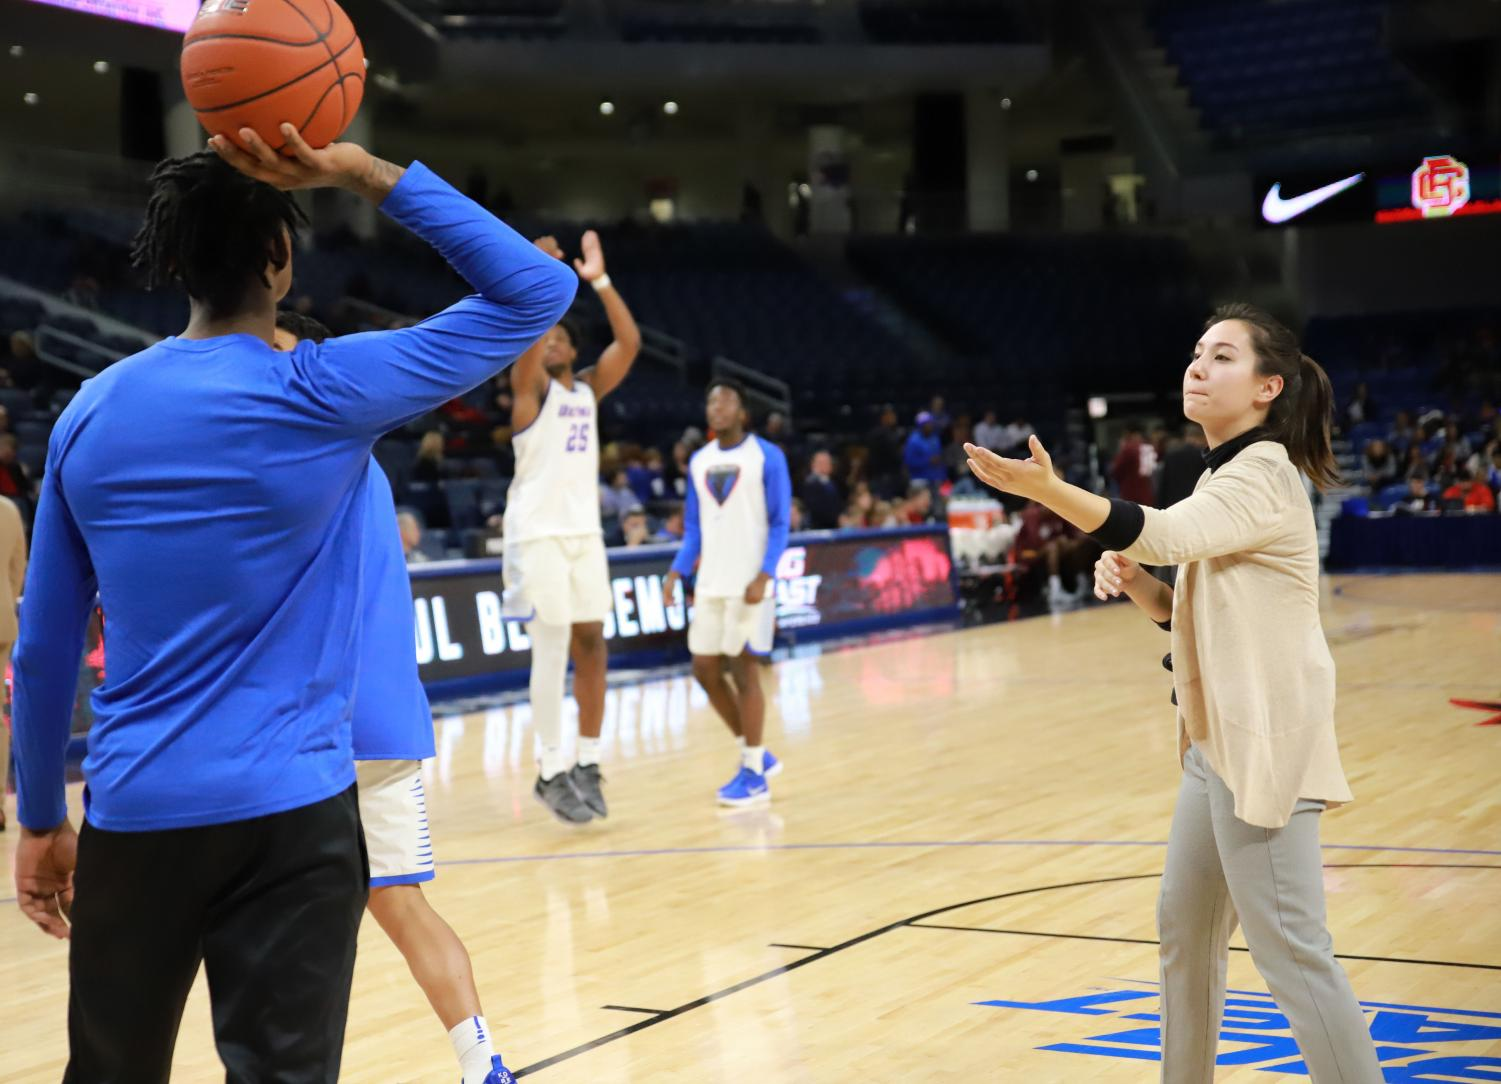 DePaul senior Maya Scanlon-Kimura asks for the basketball from sophomore forward Darious Hall during warmups prior to a Nov. 7 game against Bethune-Cookman.